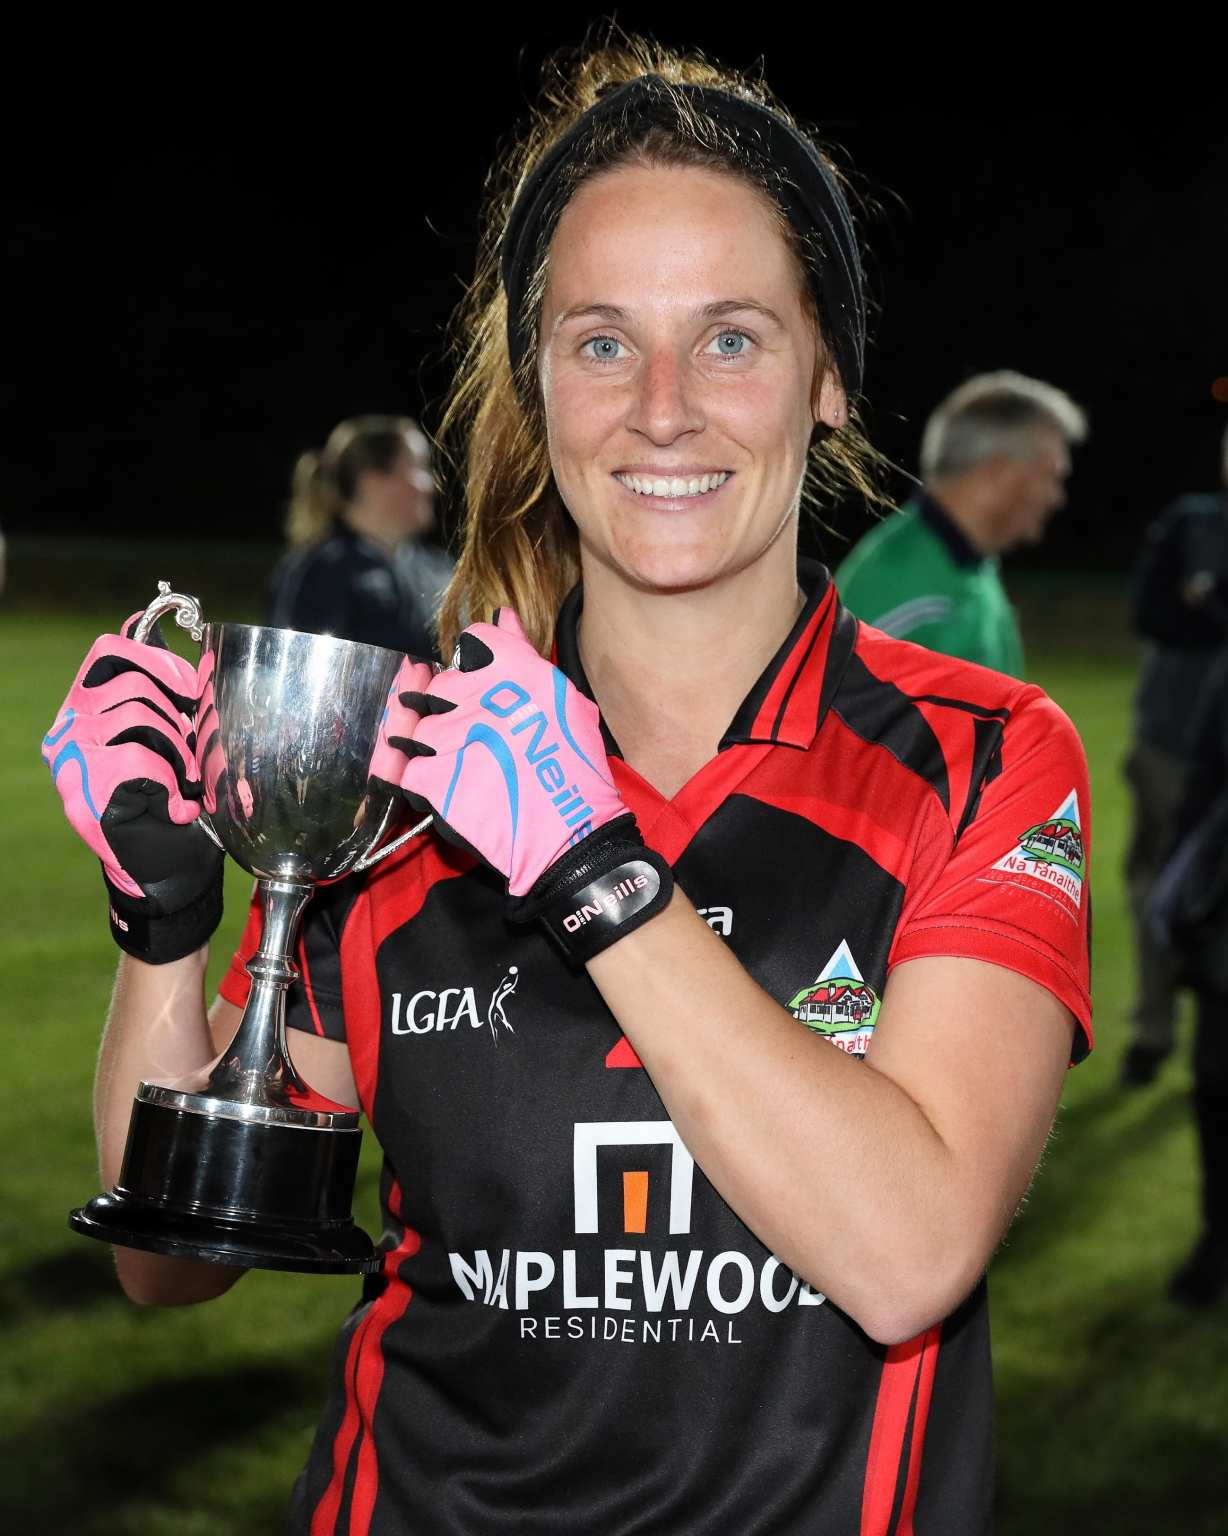 Wanderers Ladies Football Captain holding the Junior E championship trophy